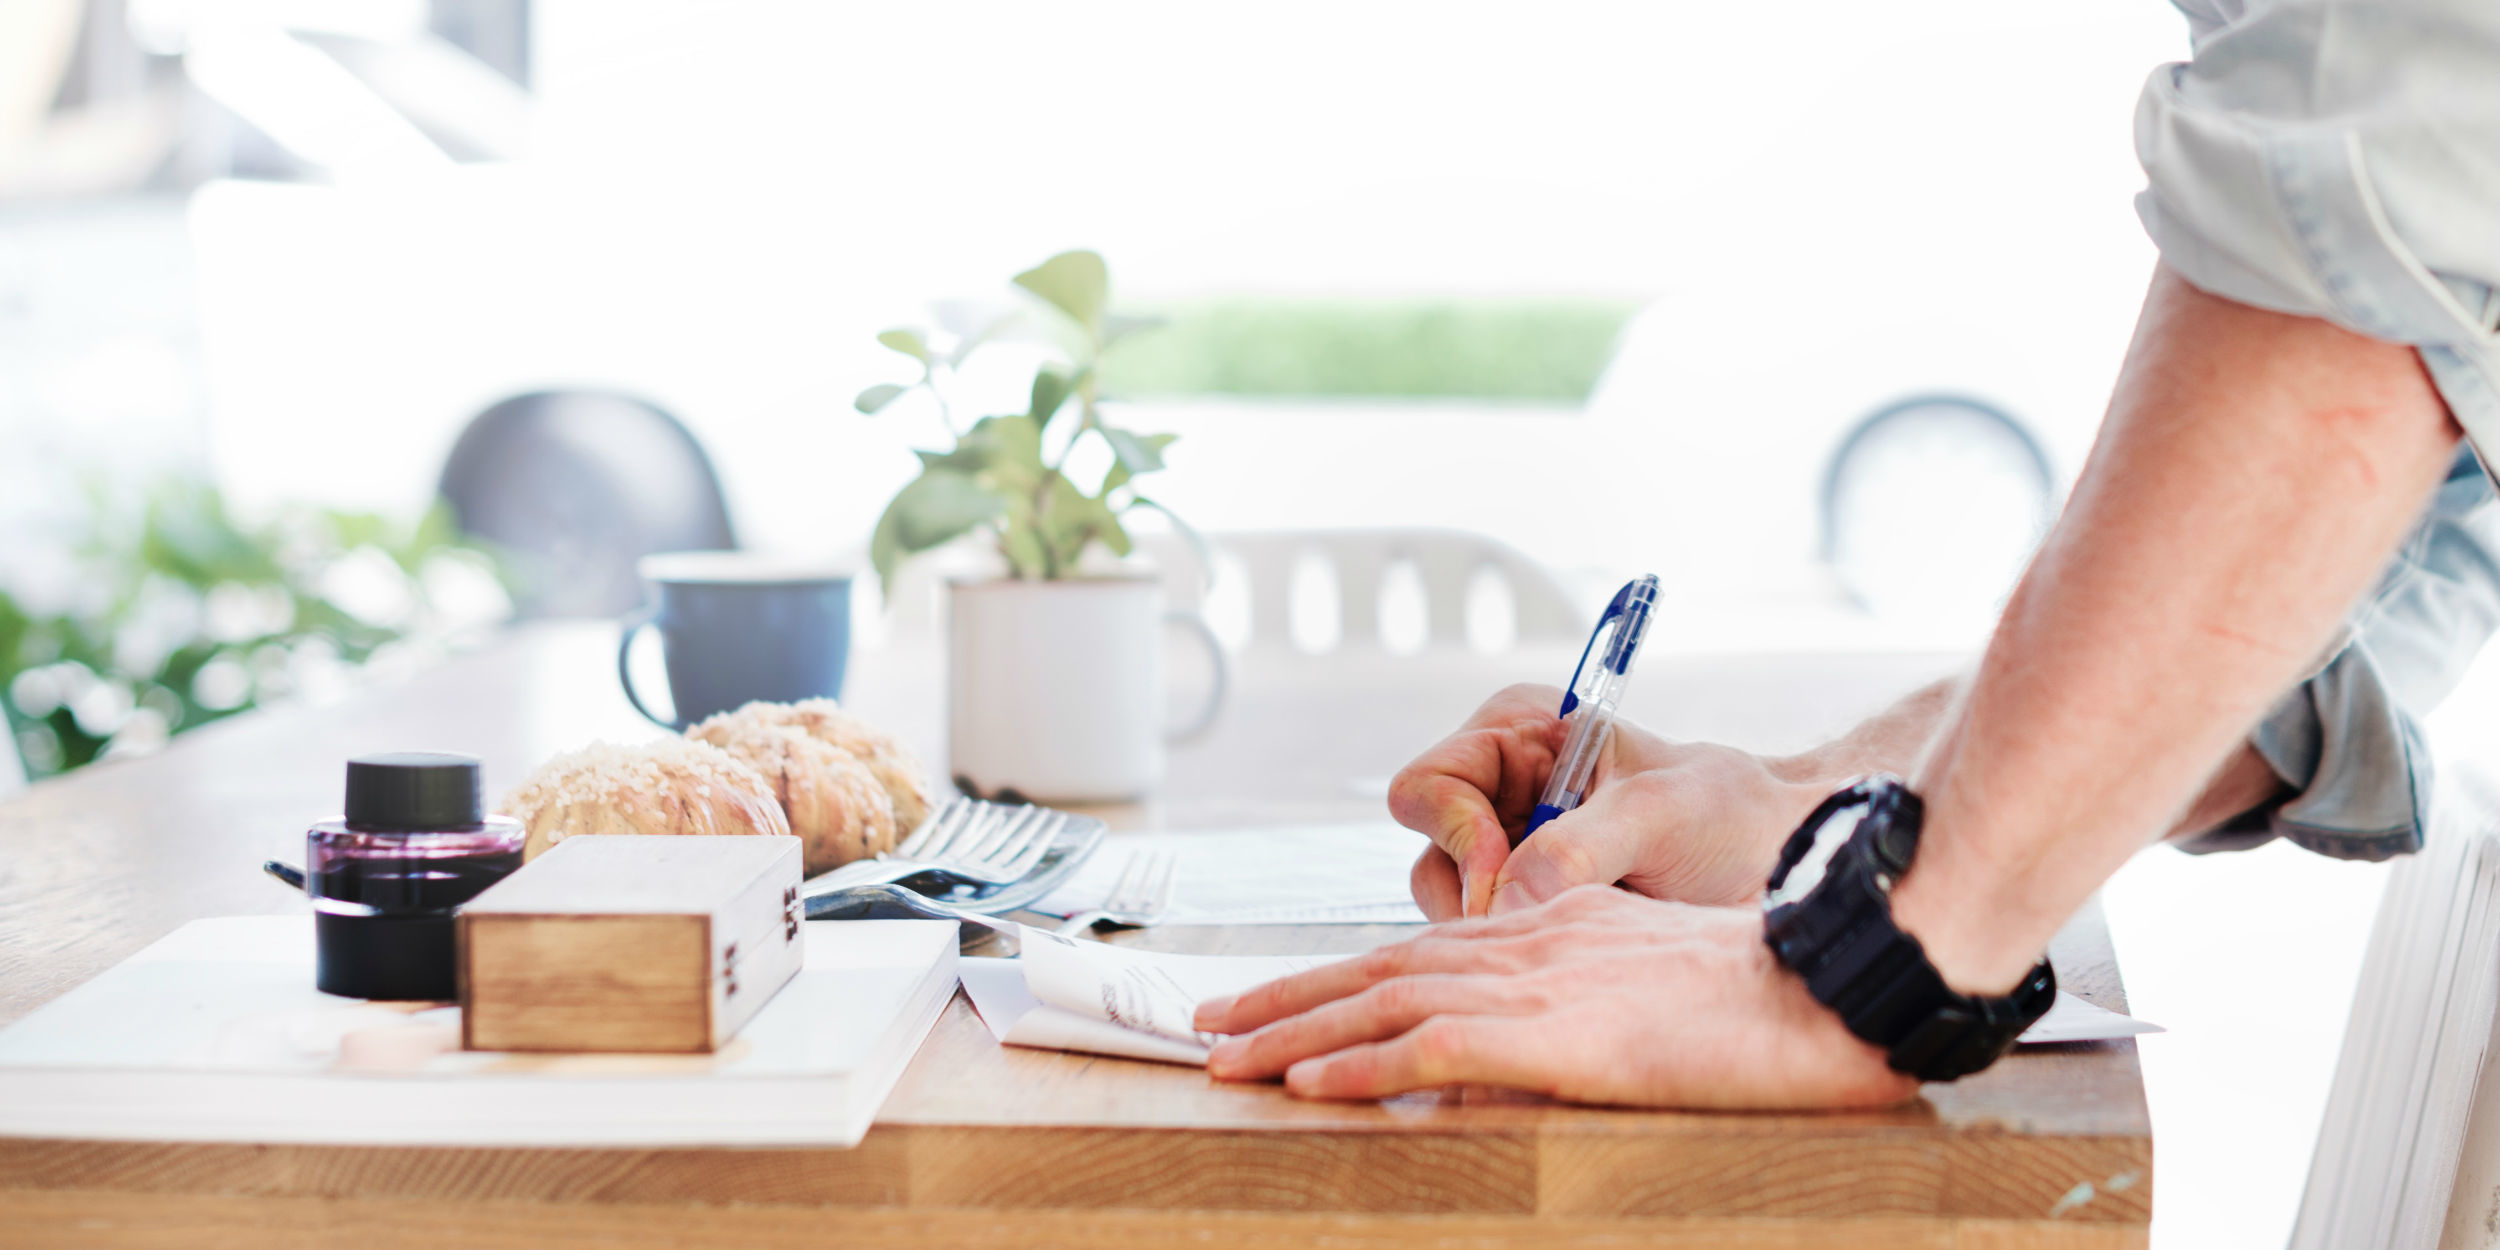 Useful tips to help you sign an your legal agreements correctly